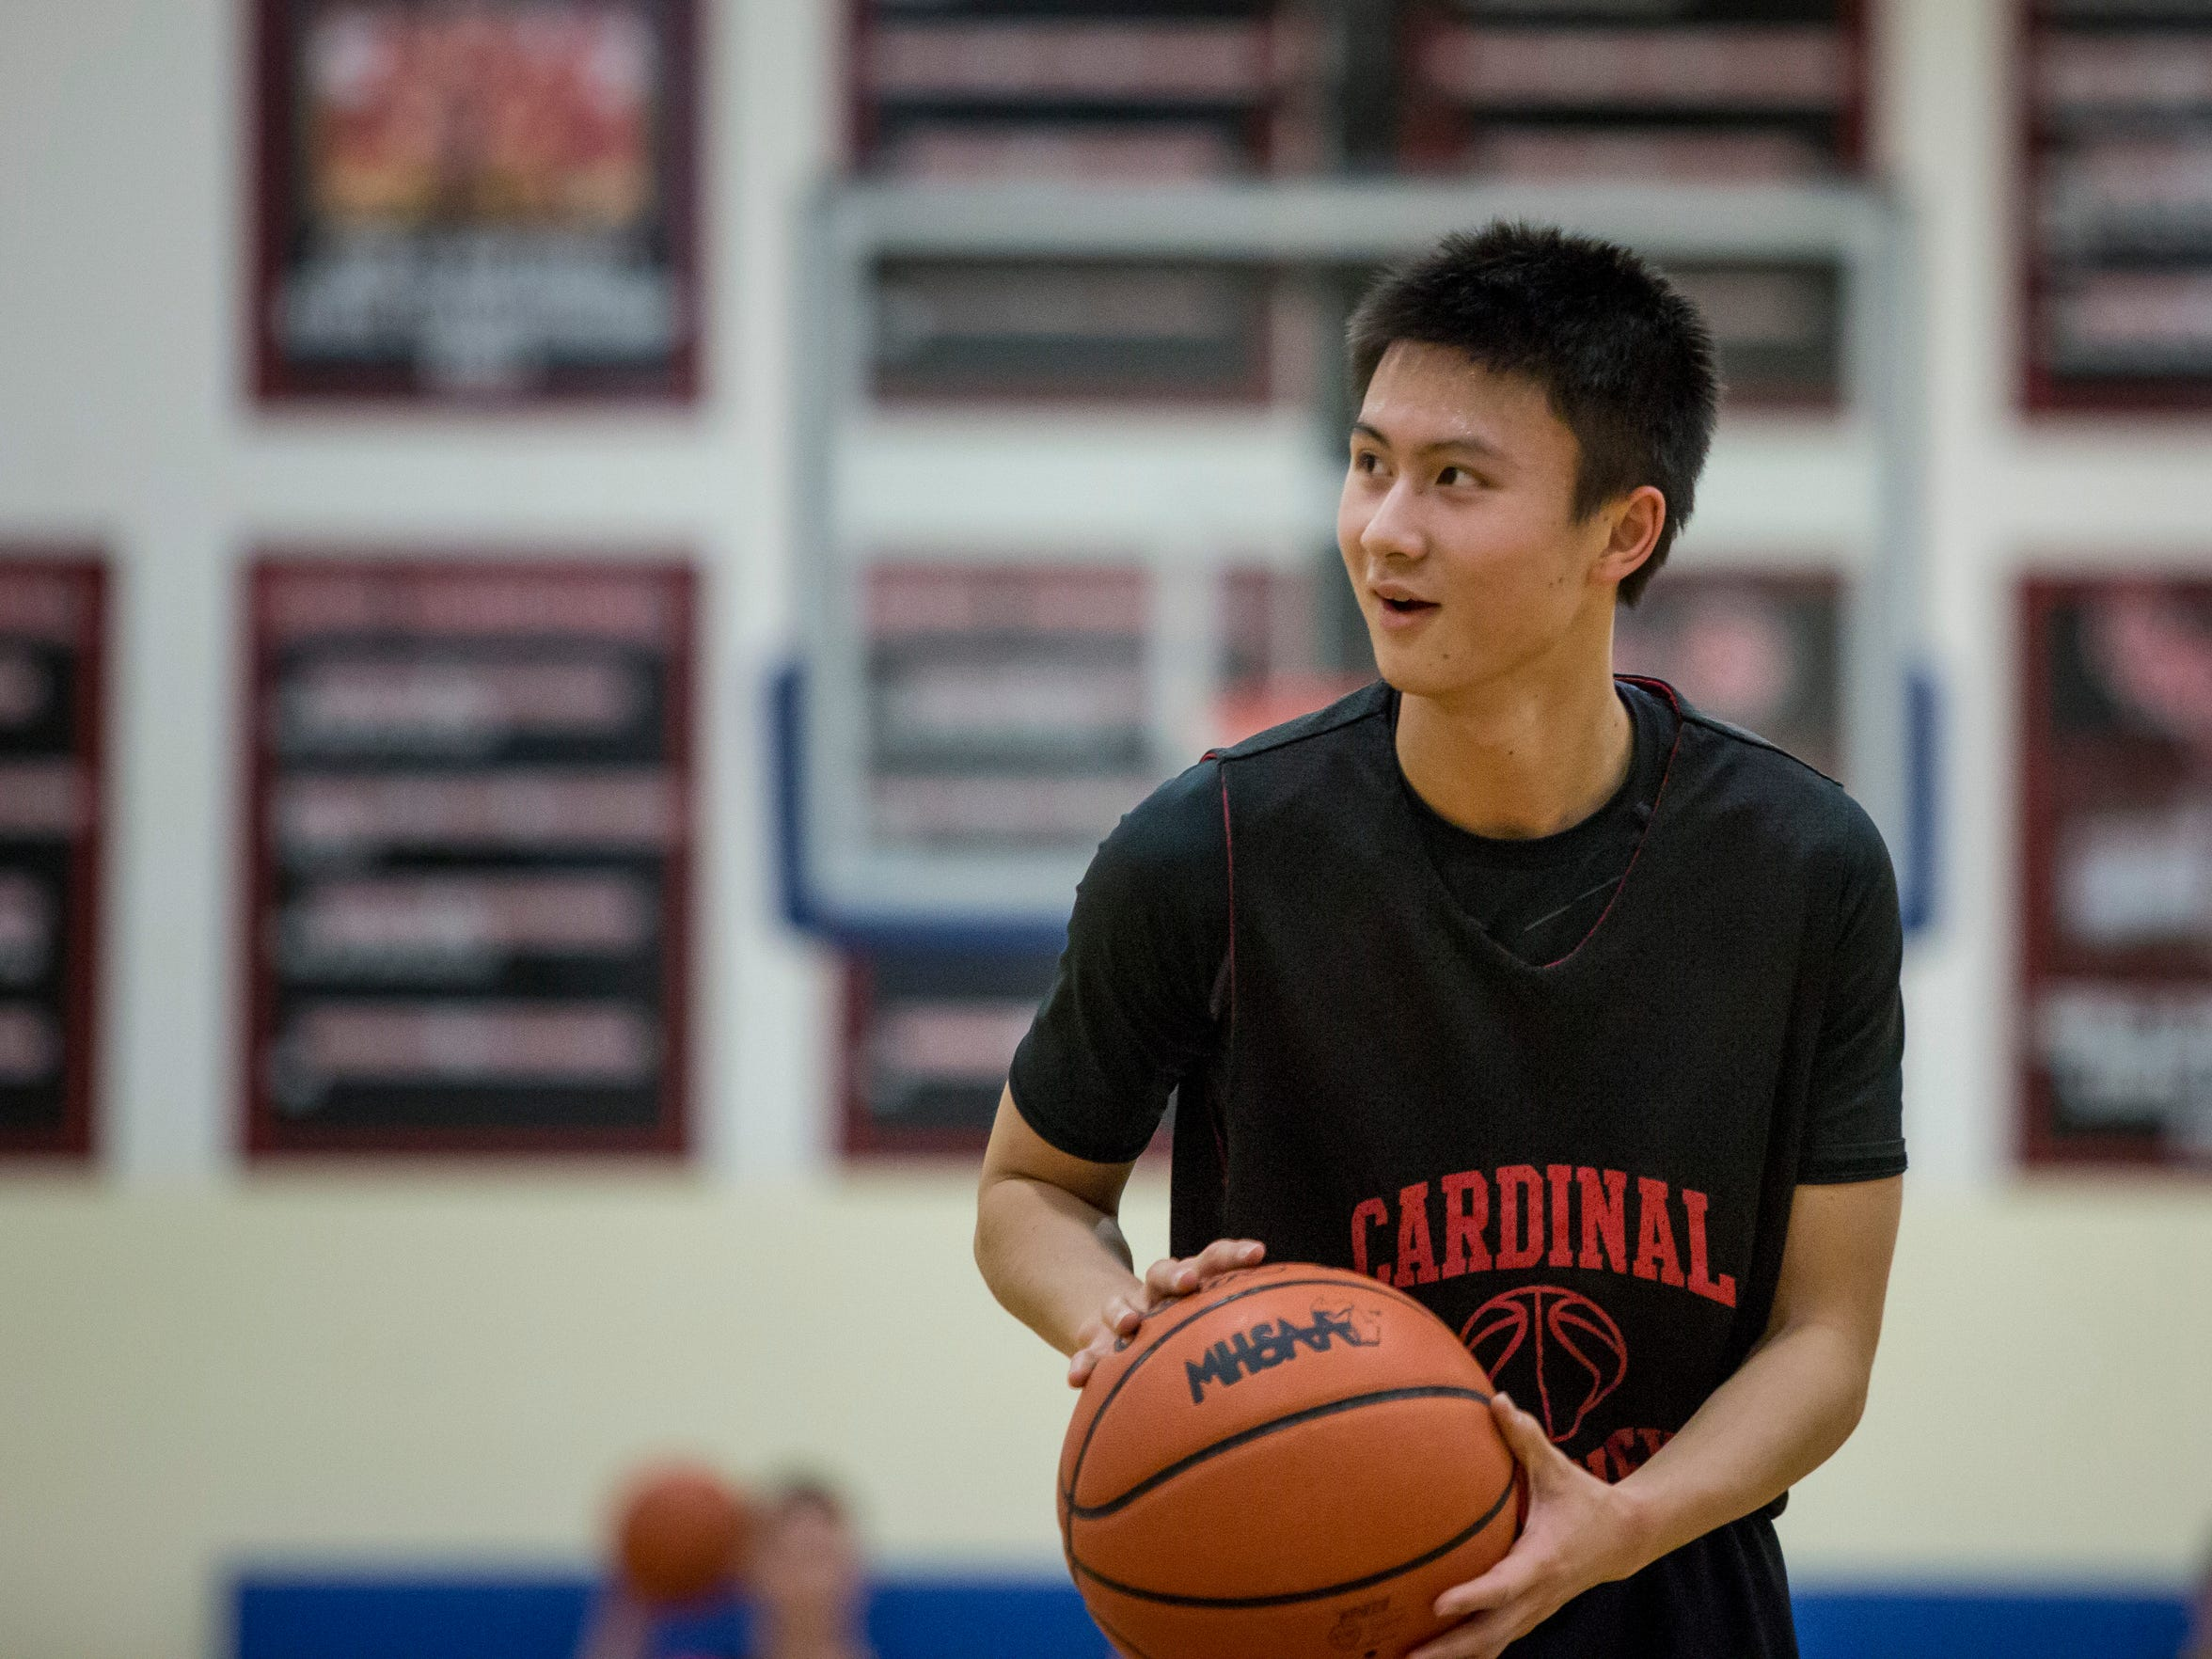 Senior Chris Xuan, 19, chats with teammates as he takes